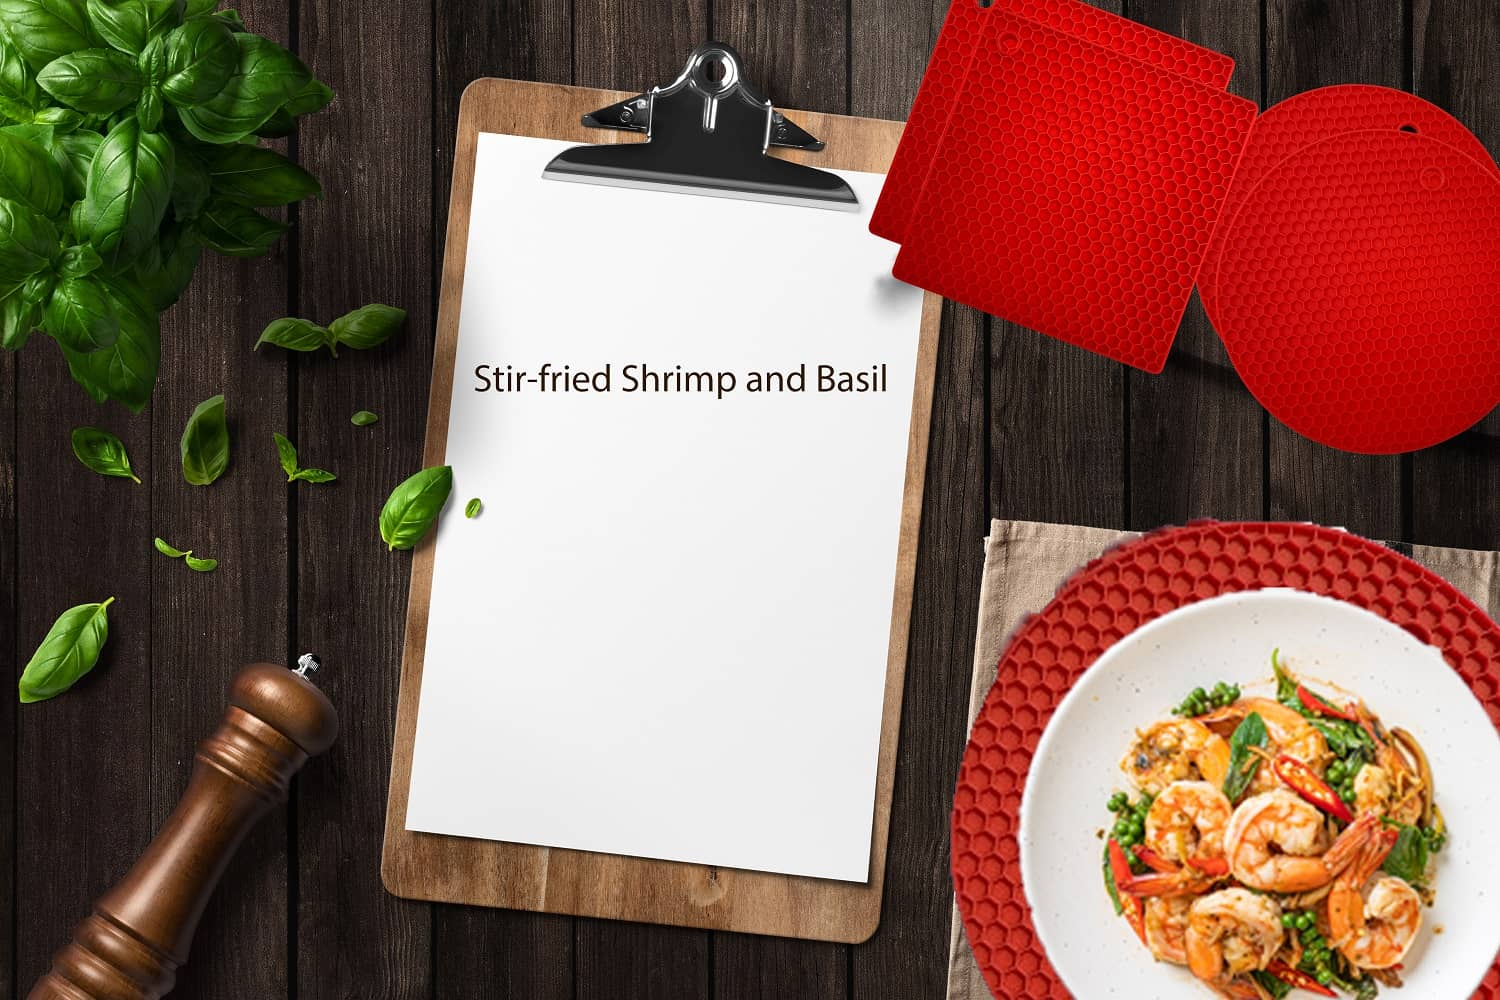 Stir-fried Shrimp with Basil recipe